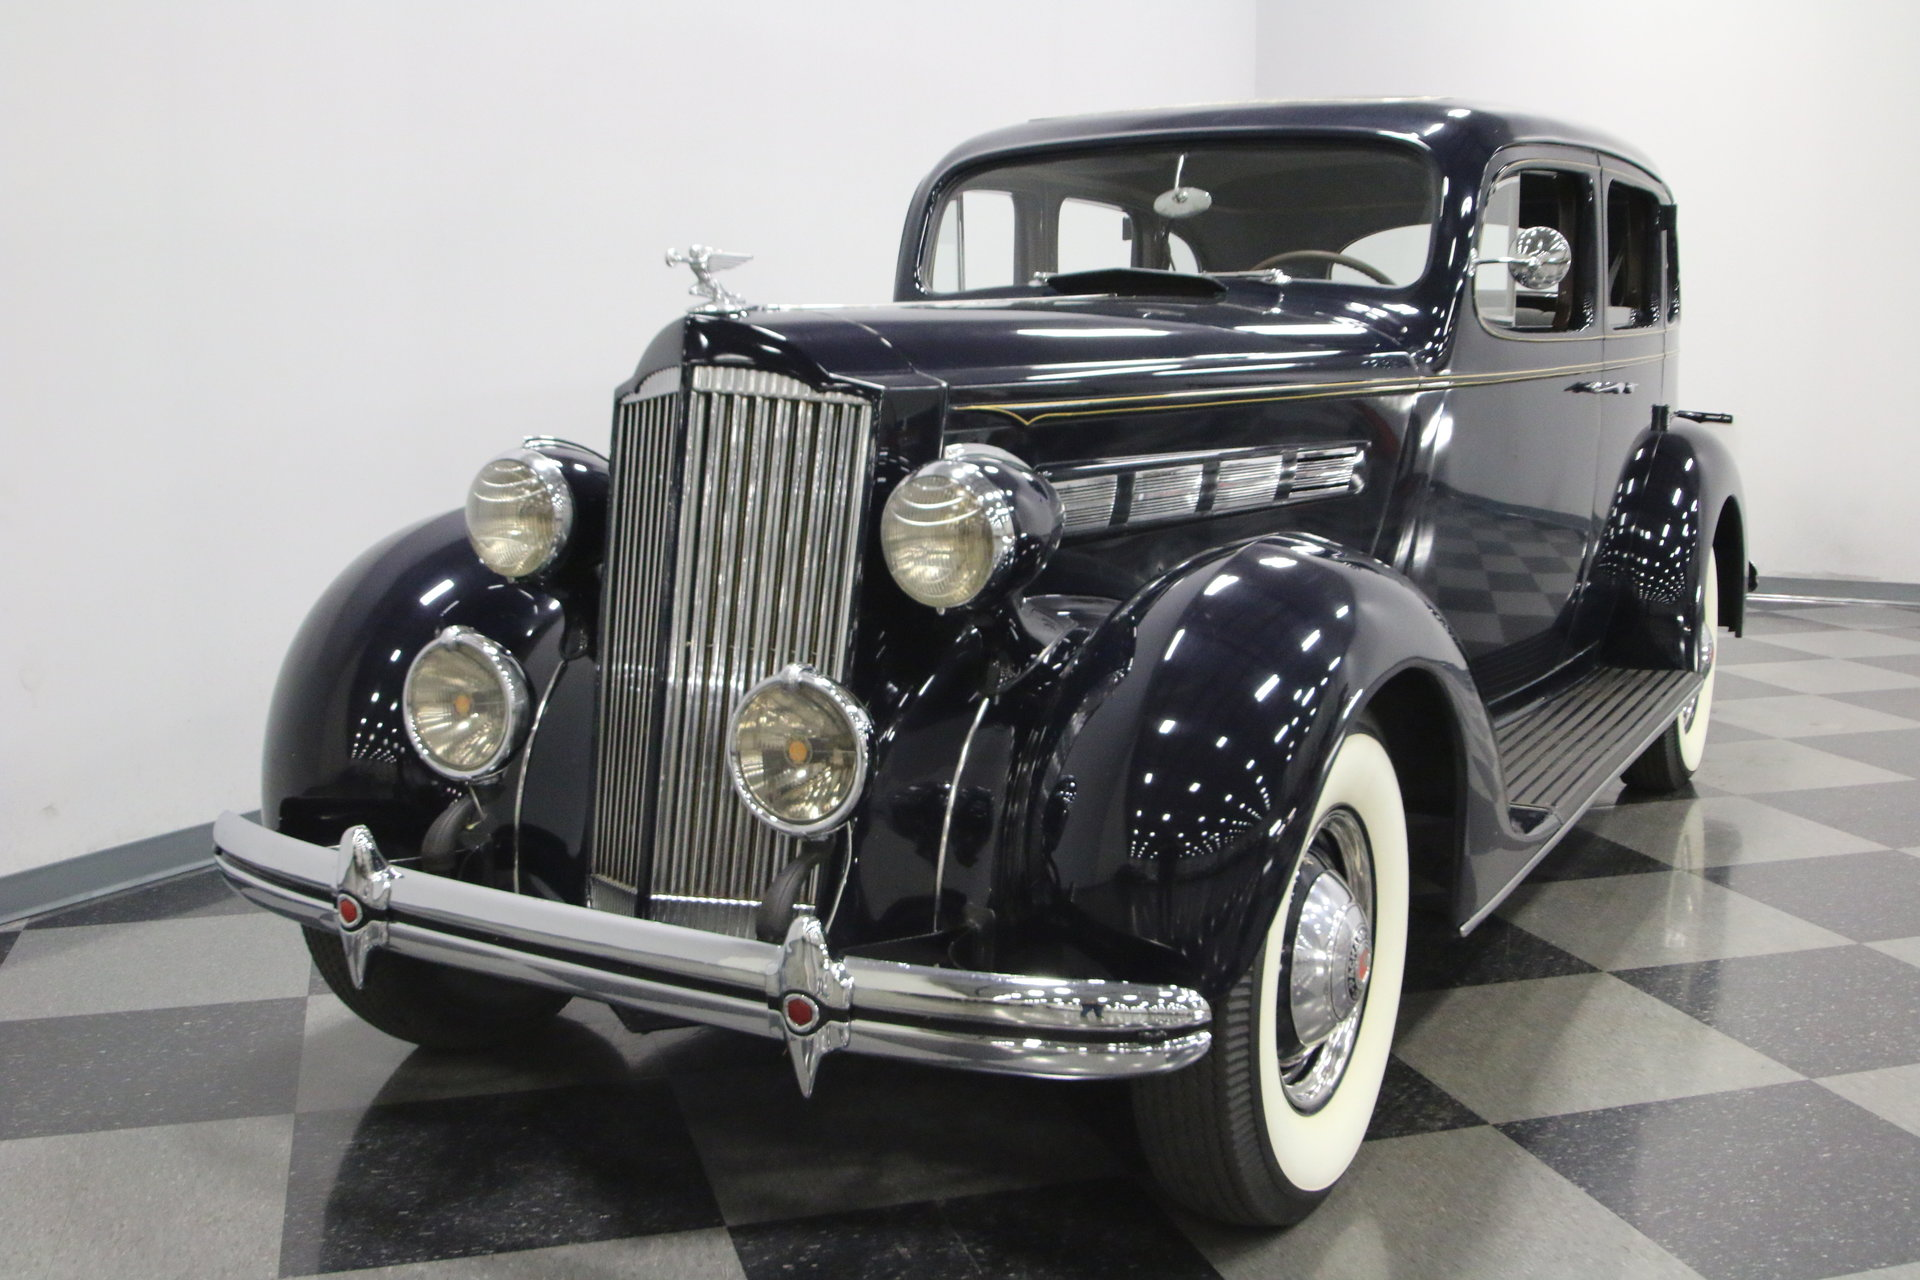 Mercedes Fort Pierce >> 1937 Packard 120 | Streetside Classics - The Nation's Trusted Classic Car Consignment Dealer